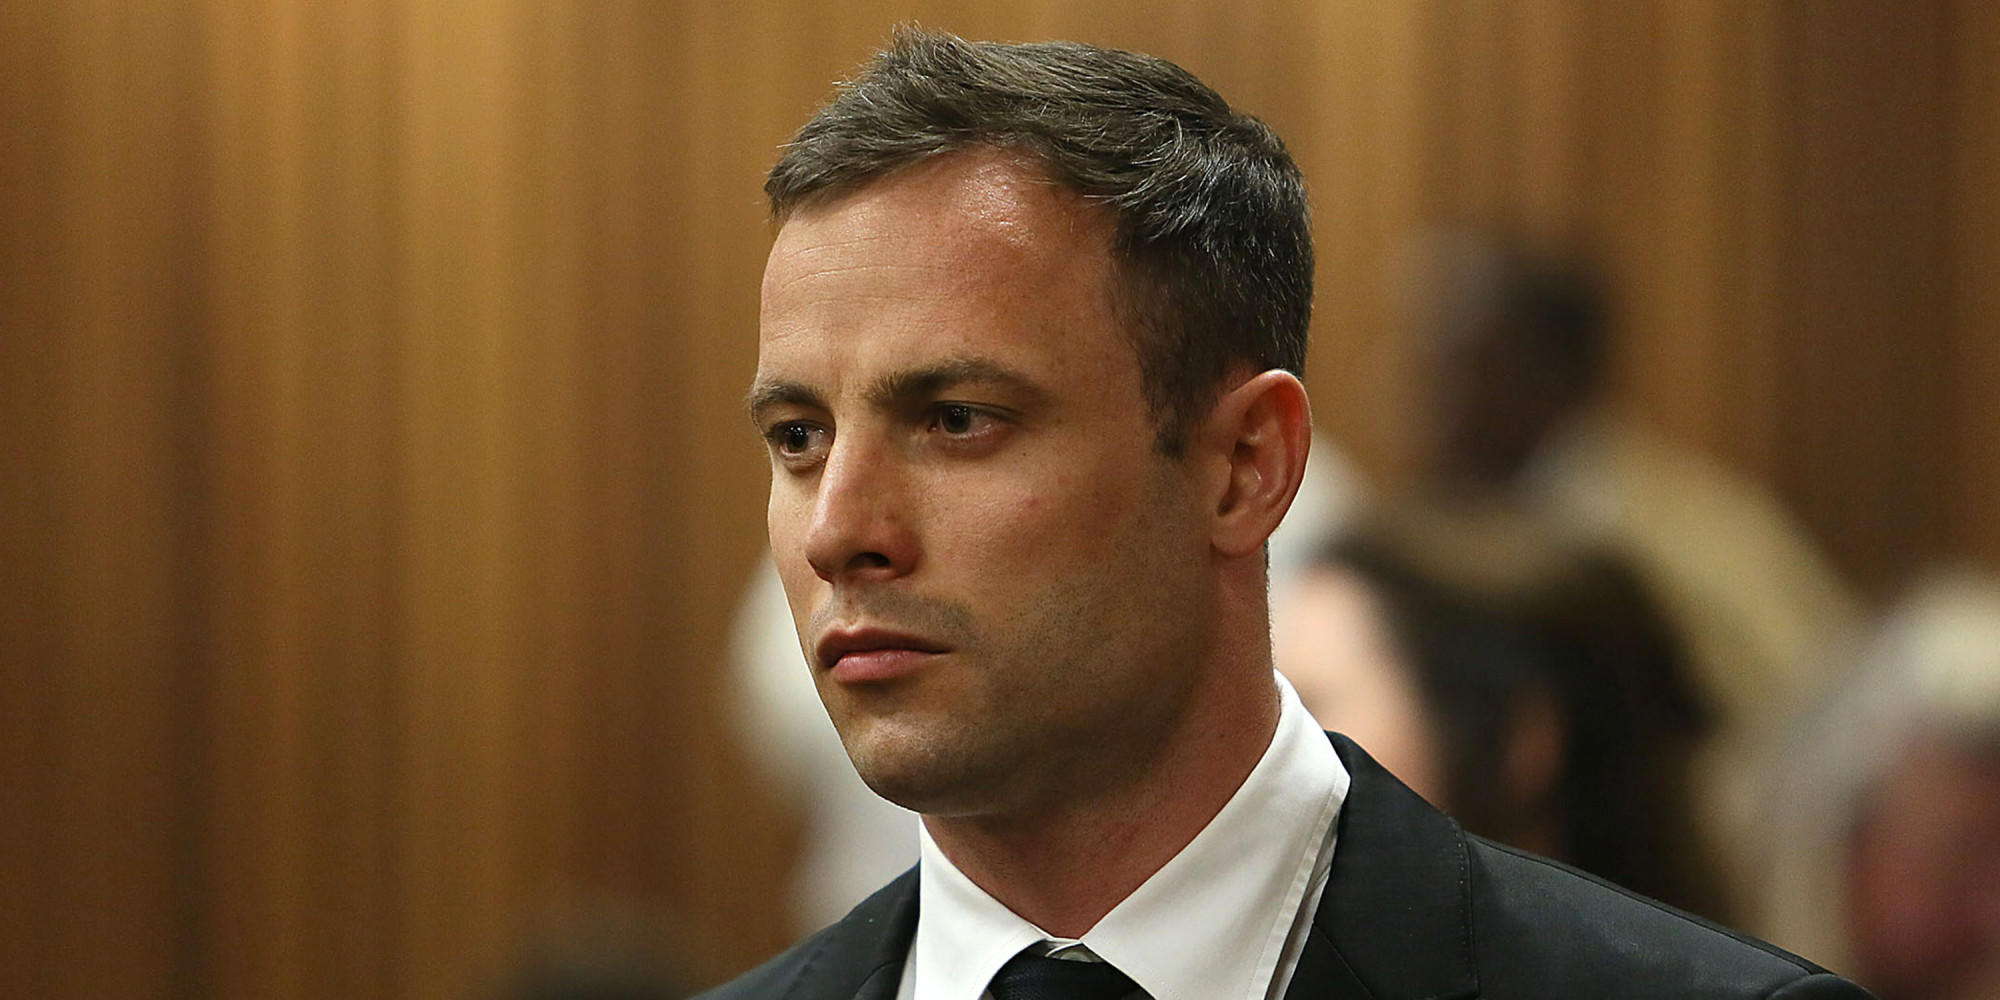 Roberta Williams Tells Gangland Ex Husband Carl Shot Seven Months Pregnant Says Misrepresented Fat Tony Co additionally Jerry Jones Women Photos n 5651702 further Prosecutors Argue Pistorius Get Jail Time additionally Evidence Photo Shows Blood Splattered Pistorius Scene N202316 as well Evidence Photo Shows Blood Splattered Pistorius Scene N202316. on oscar pistorius verdict after